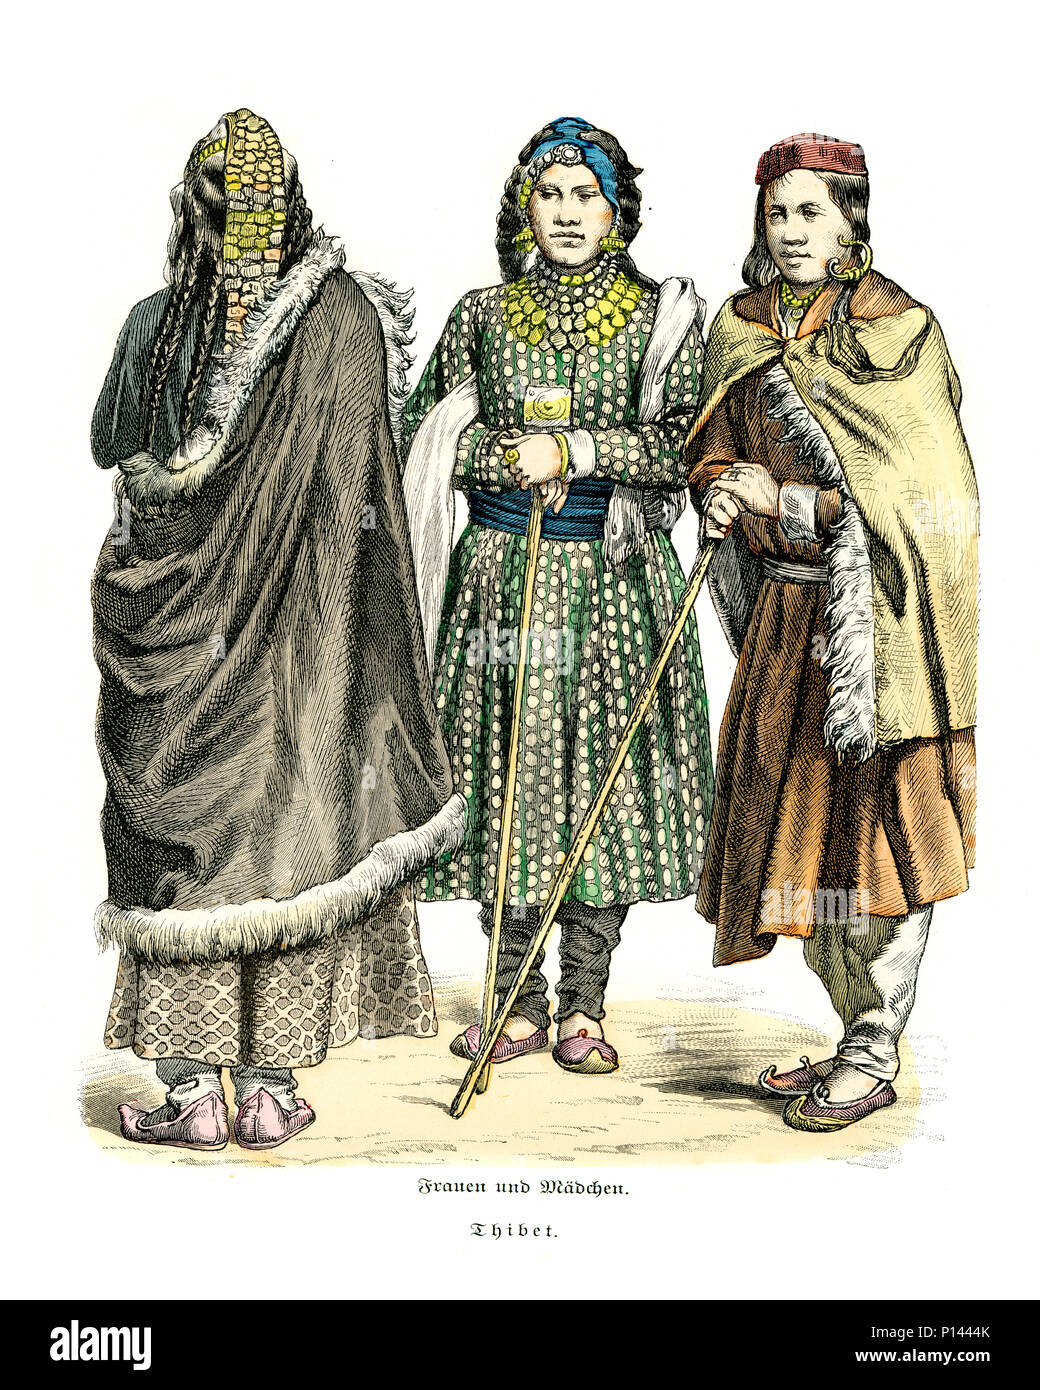 Vintage engraving of History of Fashion, Costumes of Tibet, Women 19th Century - Stock Image